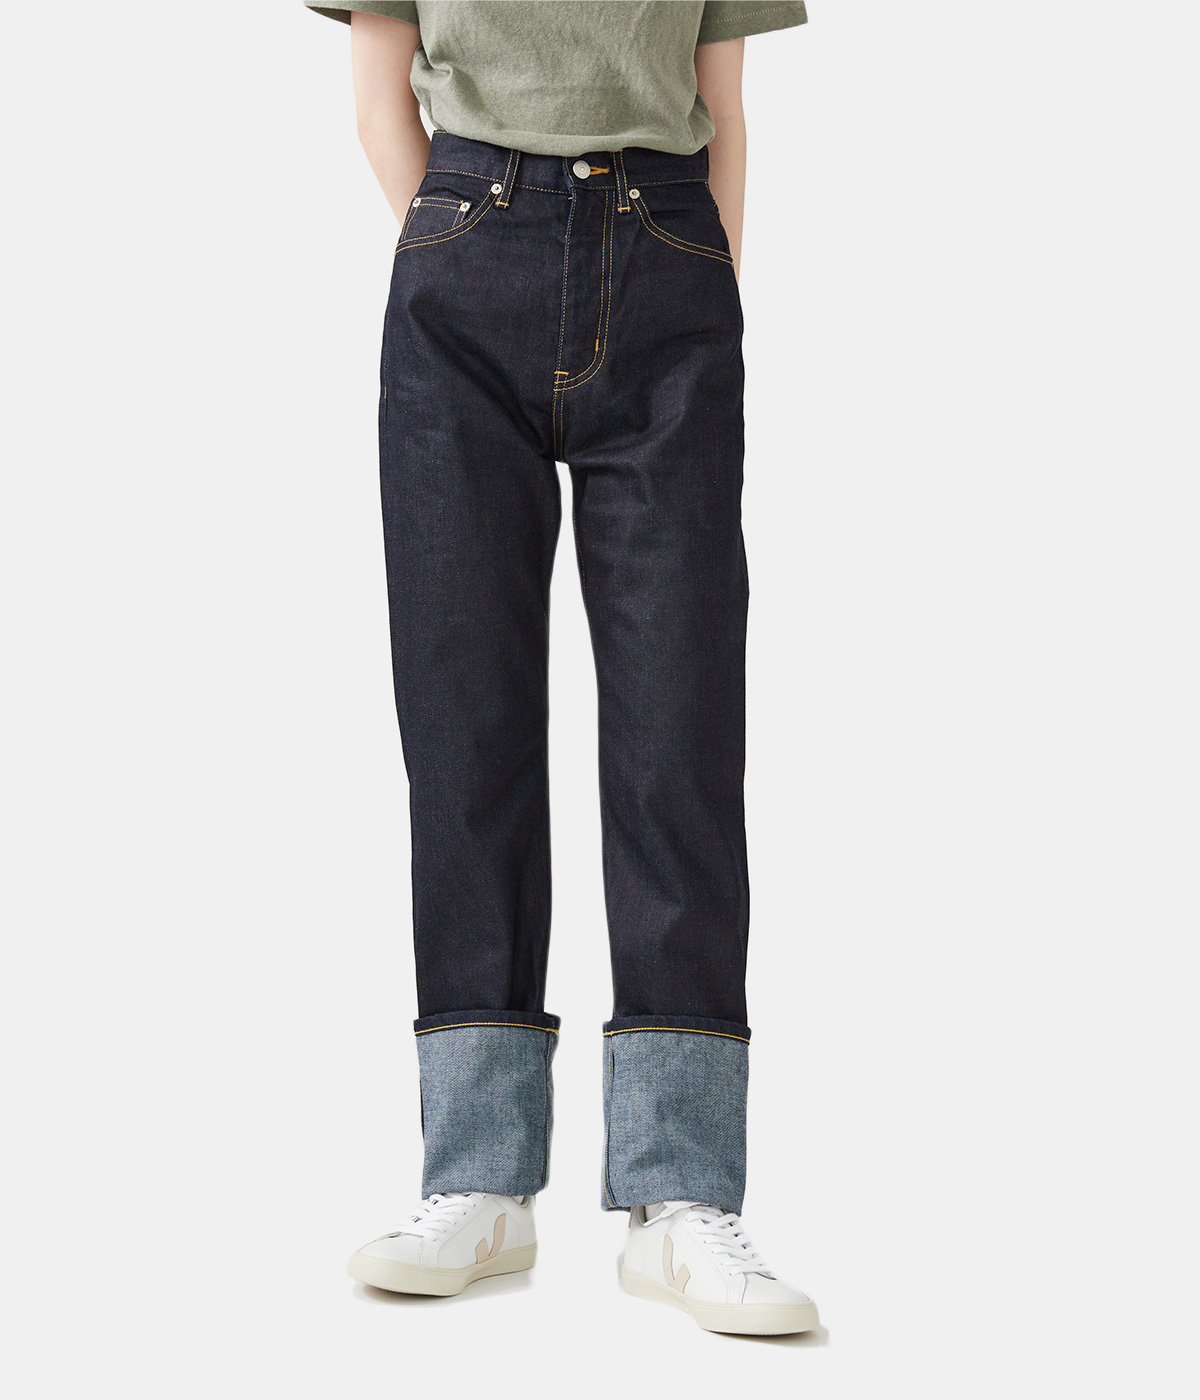 【レディース】selvage denim 5pocket woman fits